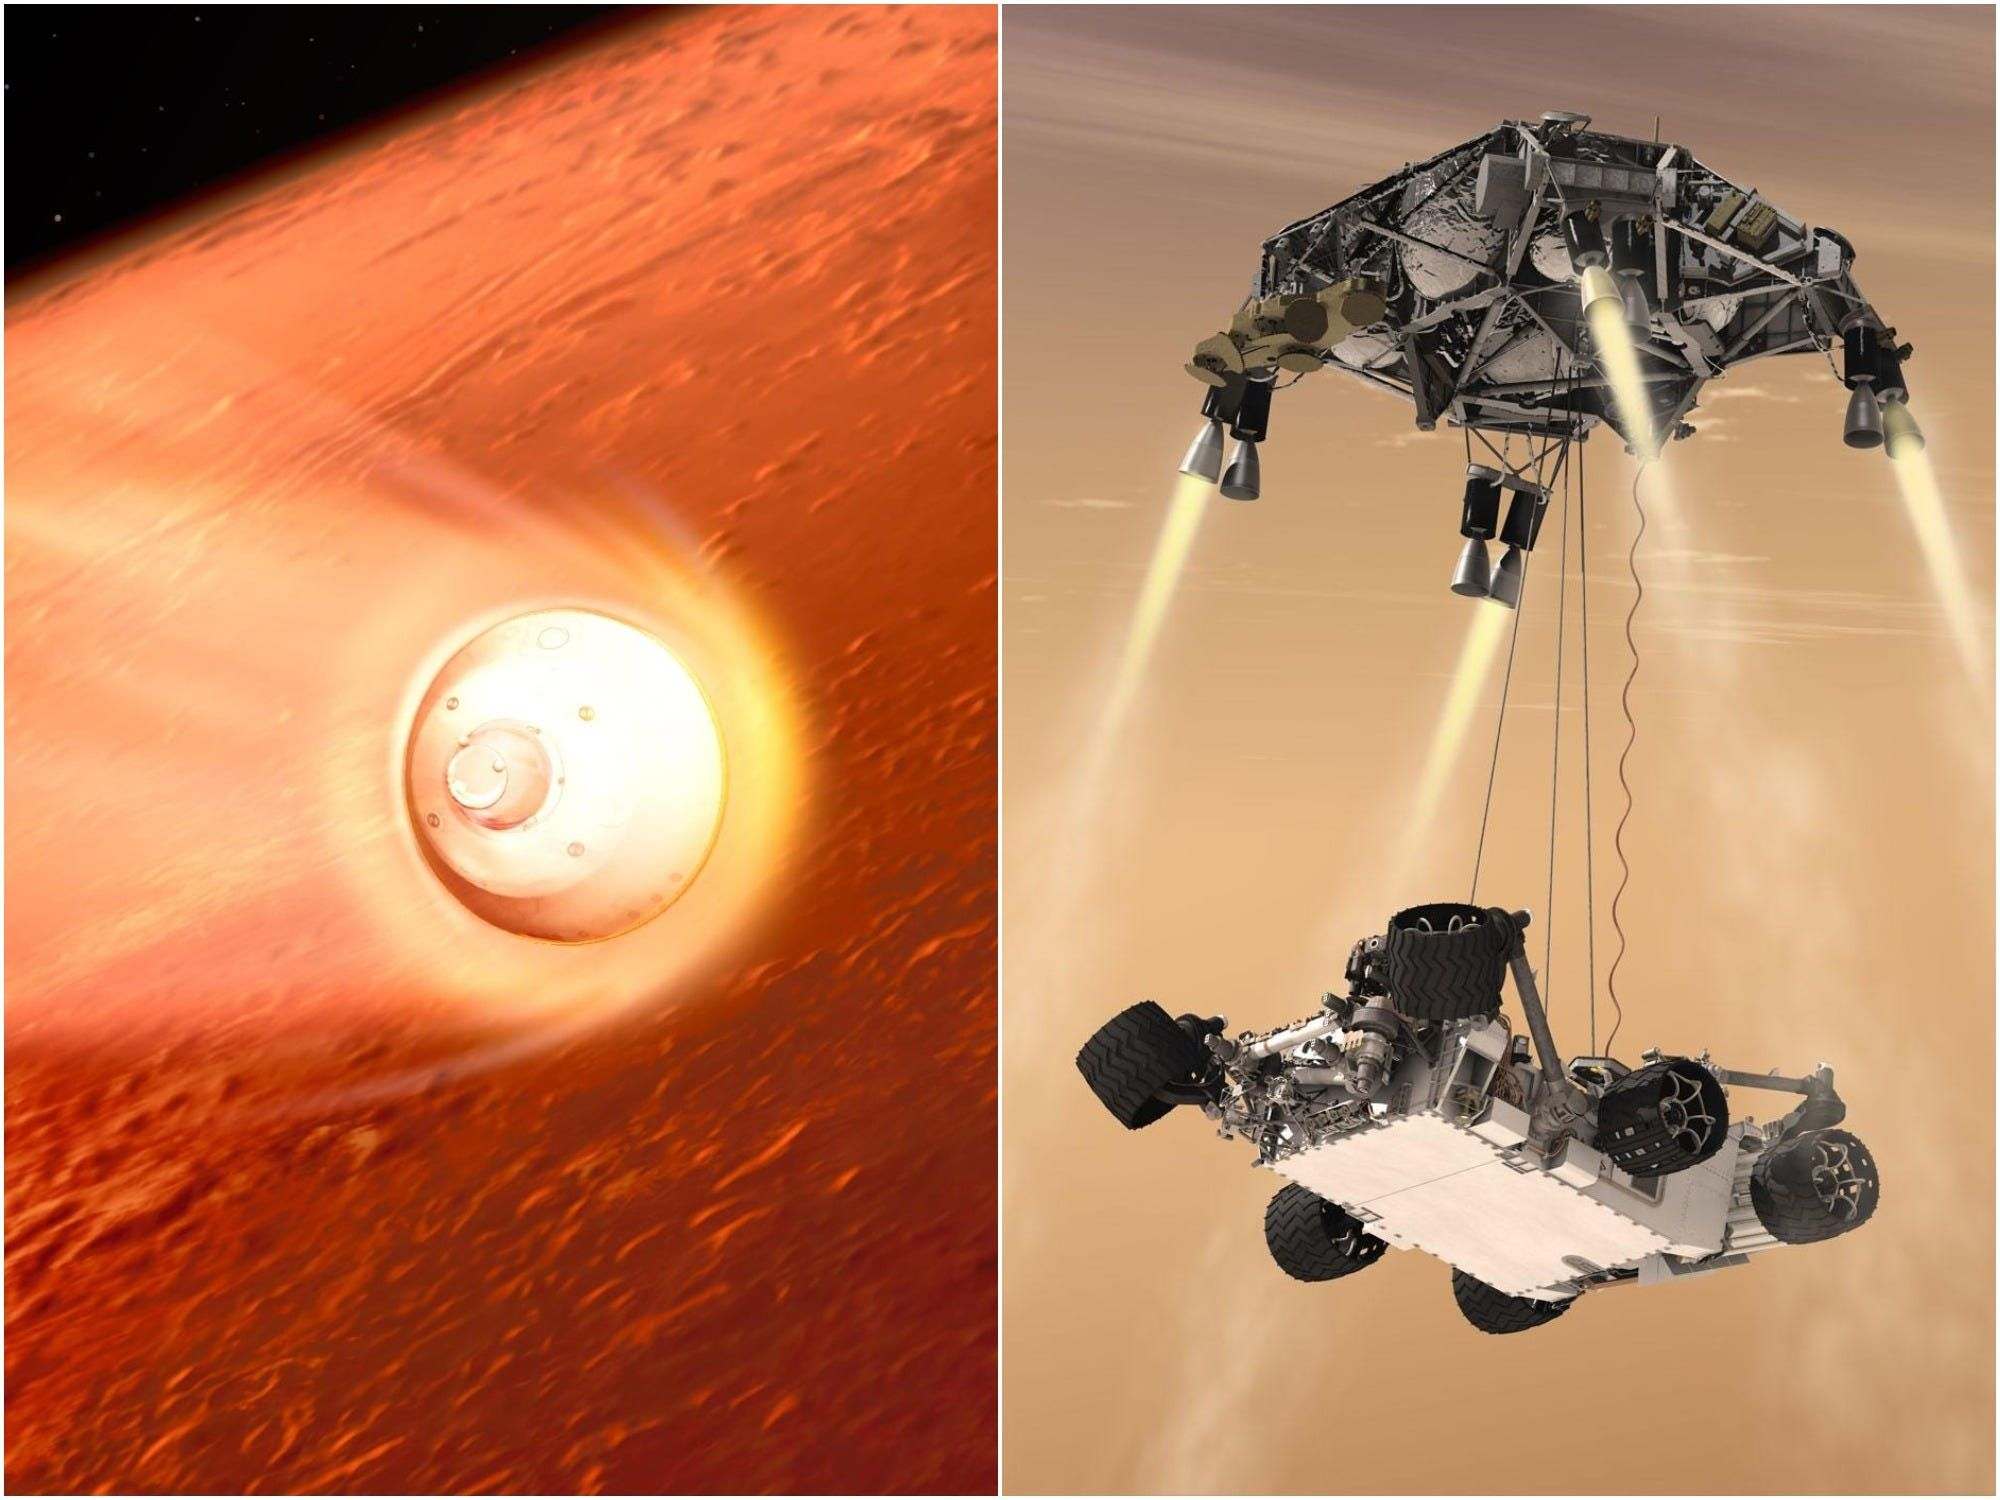 Striking NASA animation reveals the harrowing descent to Mars that the Perseverance rover is about to attempt